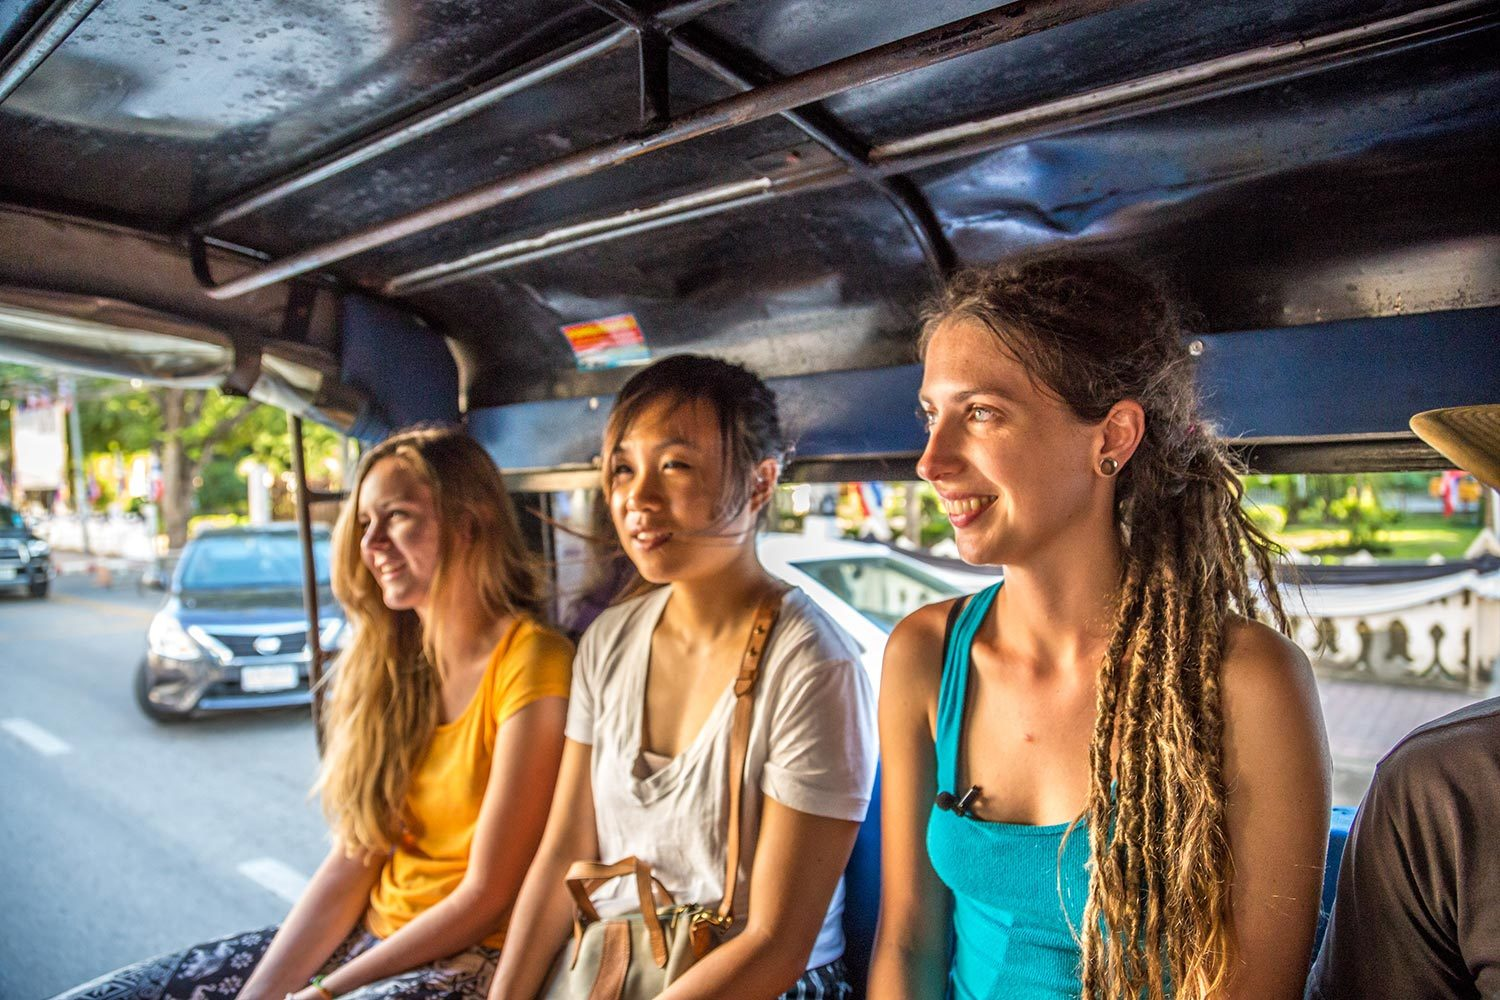 Why I Could Be an Expat in Thailand